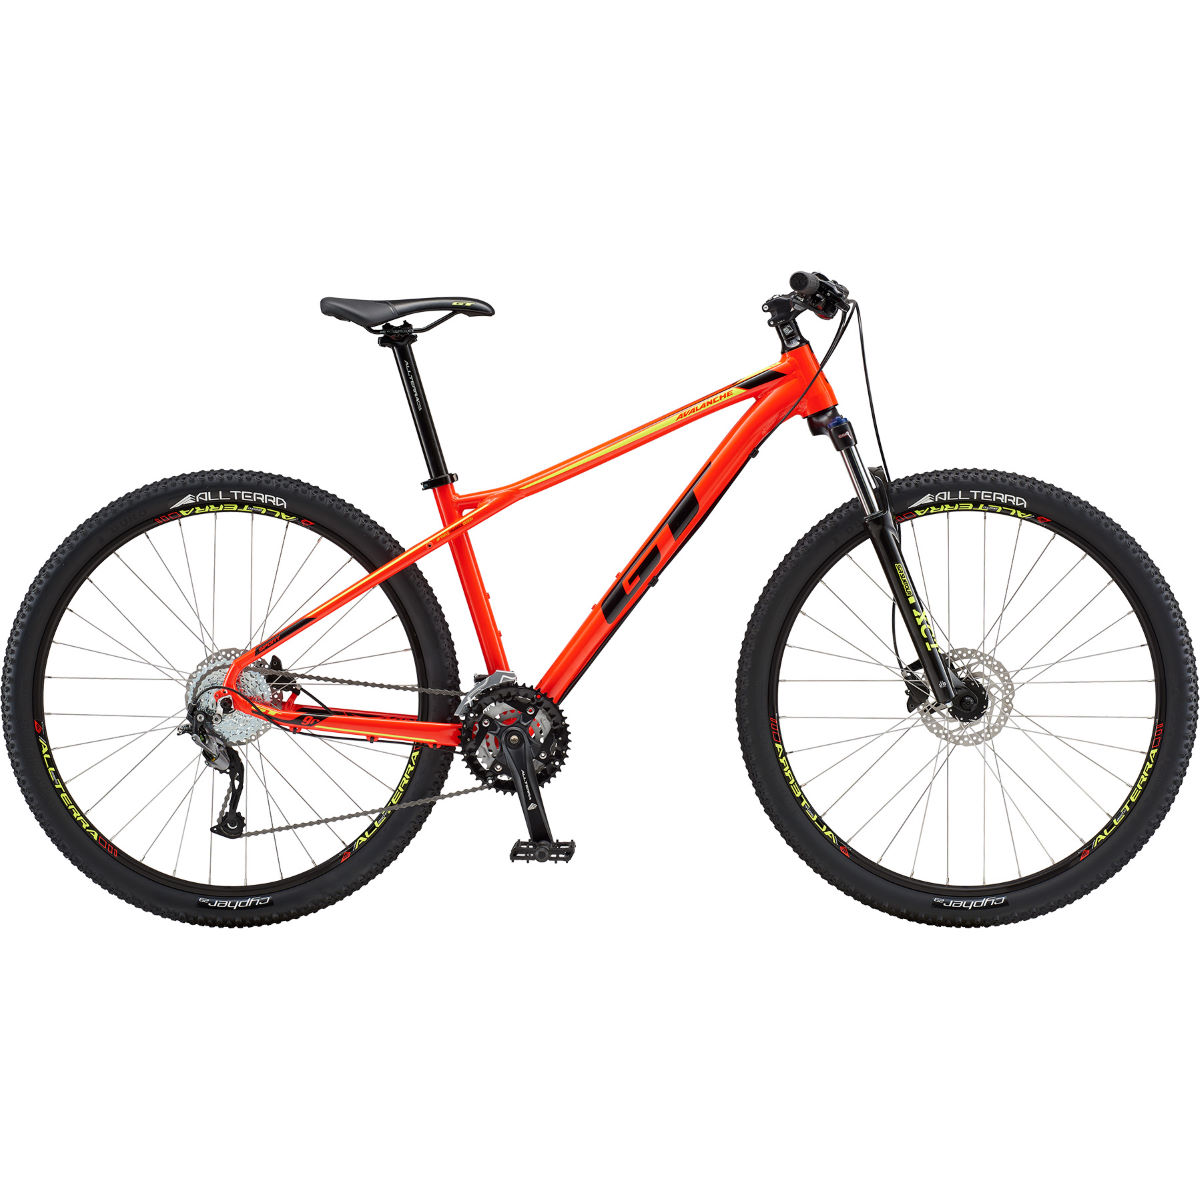 VTT semi-rigide GT Avalanche Sport 27.5 - Small Stock Bike Rouge